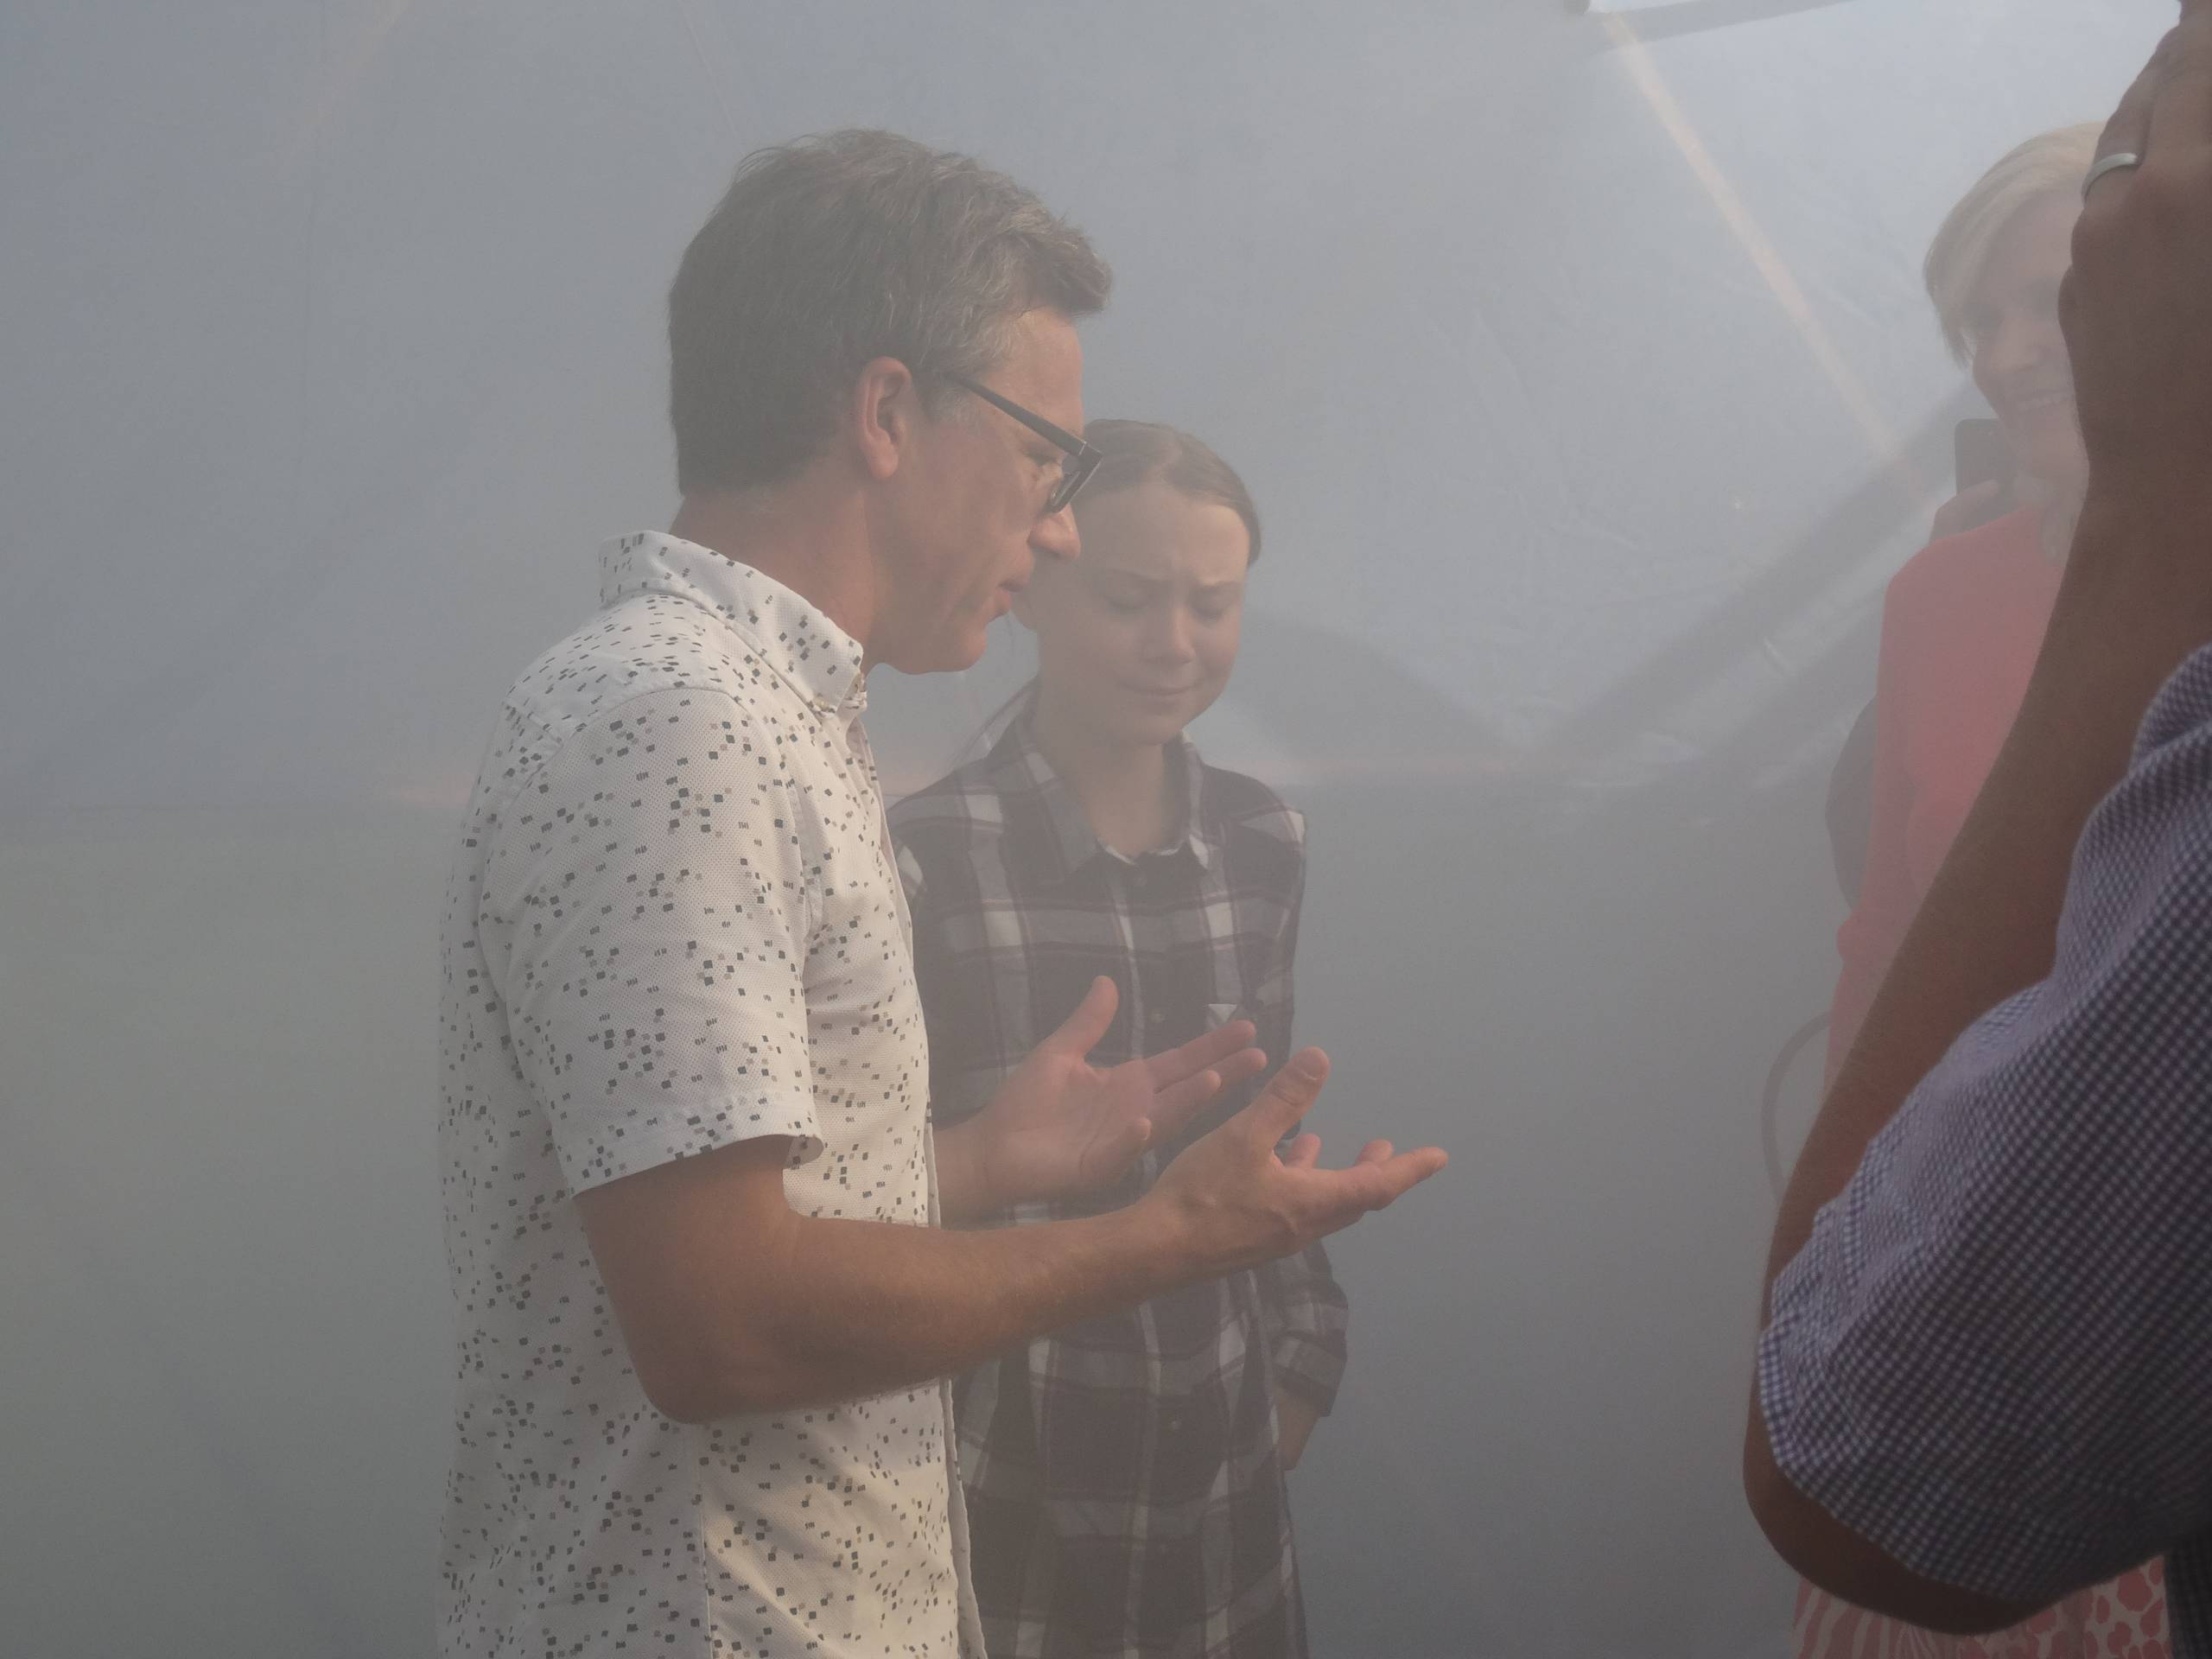 two people talk in smoggy atmosphere